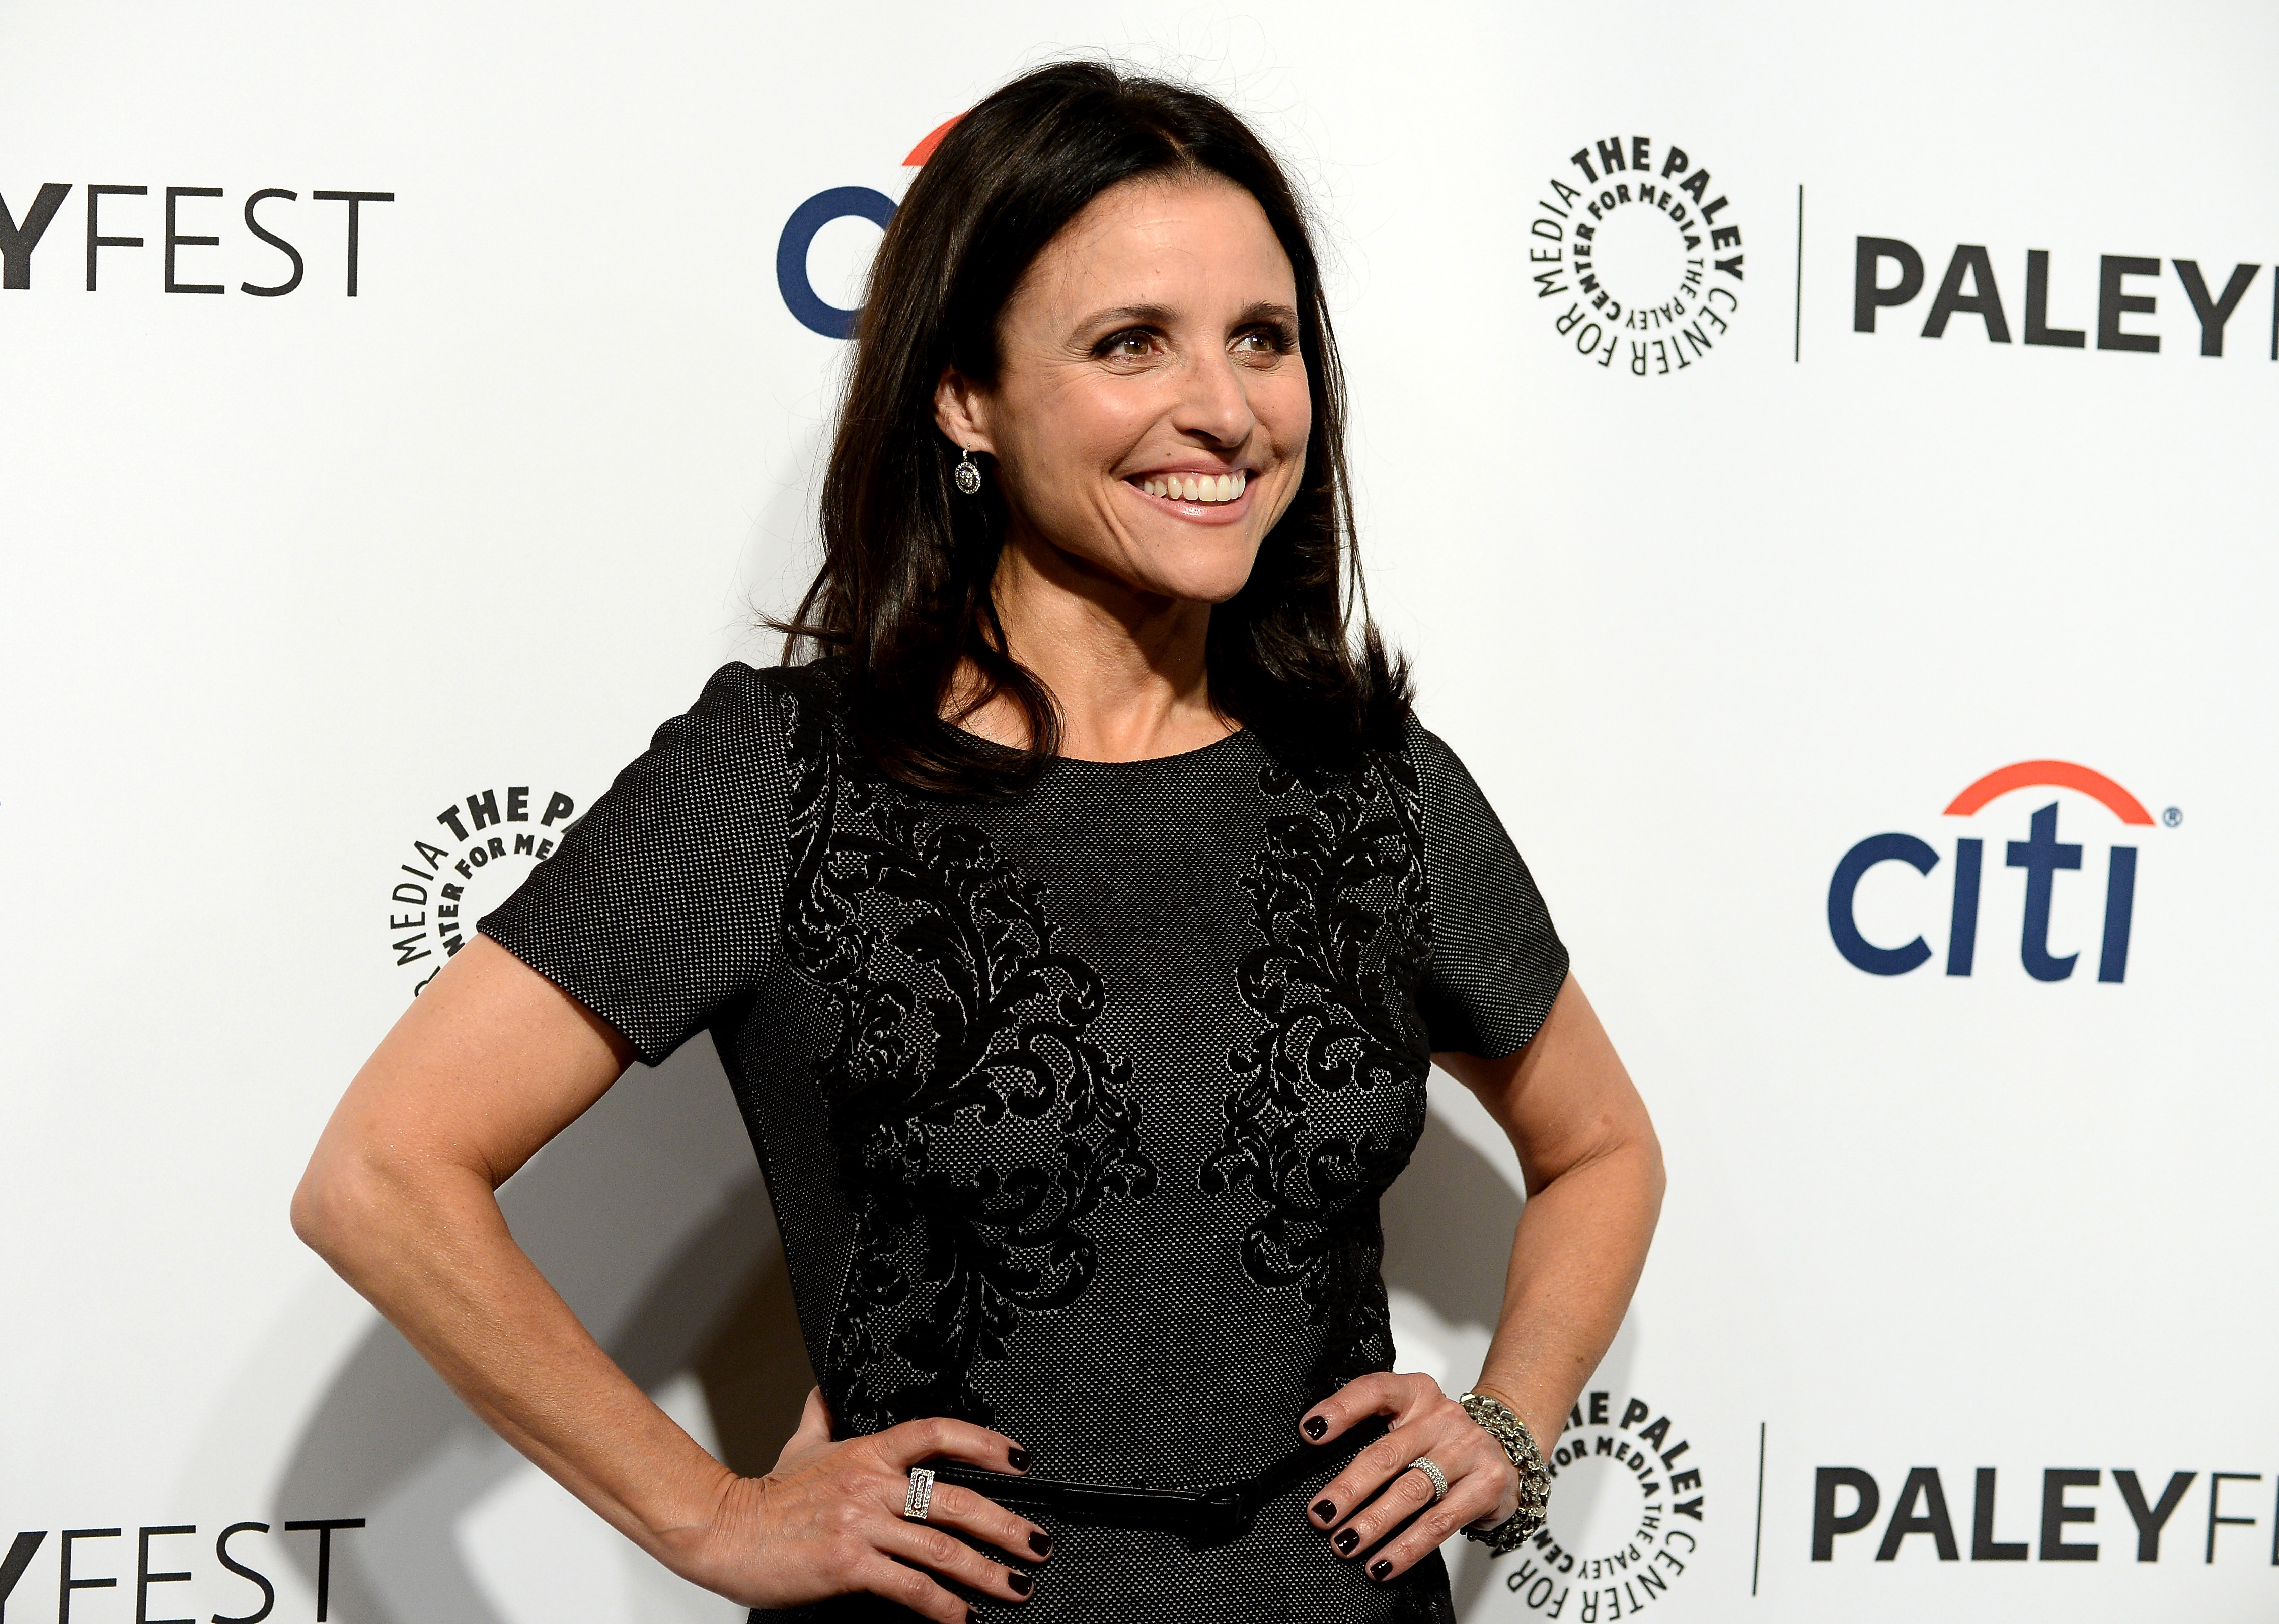 Julia Louis-Dreyfus naked on the cover of Rolling Stone